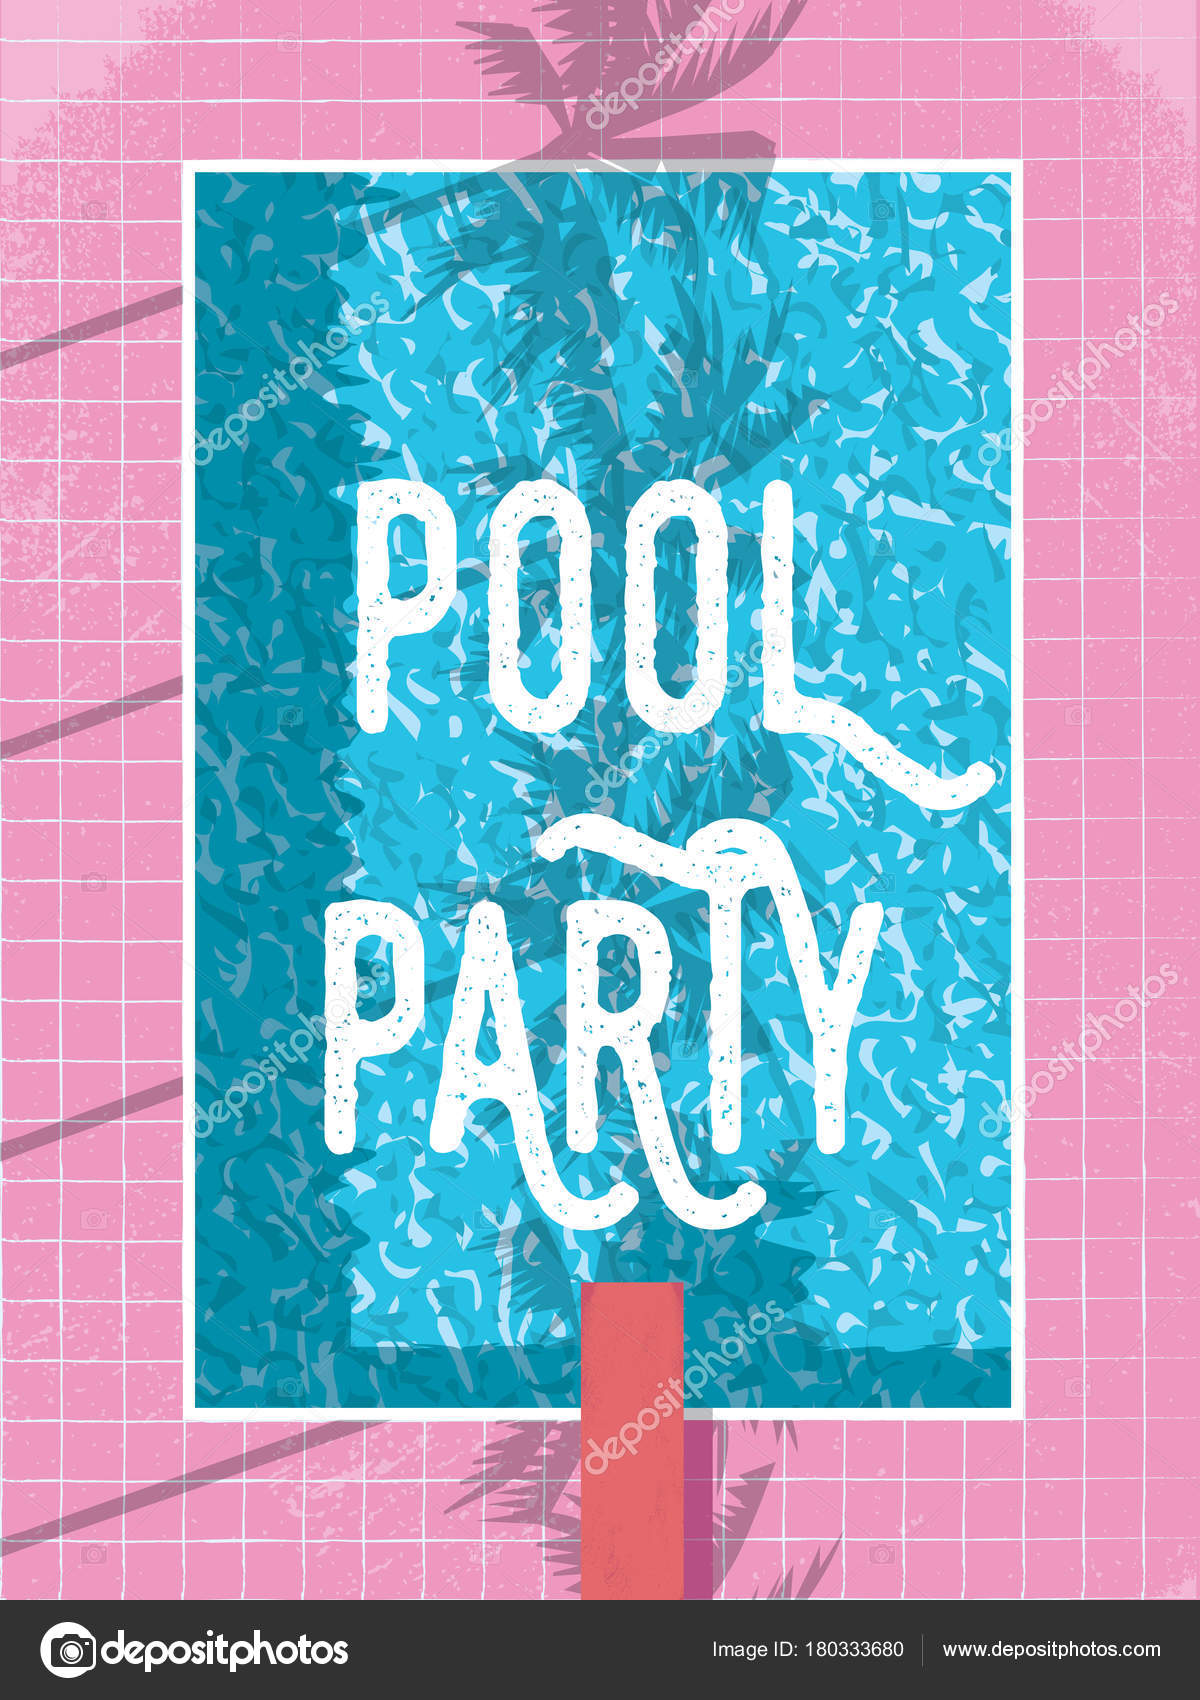 Images: vintage swimming pool posters | Summer pool party ...